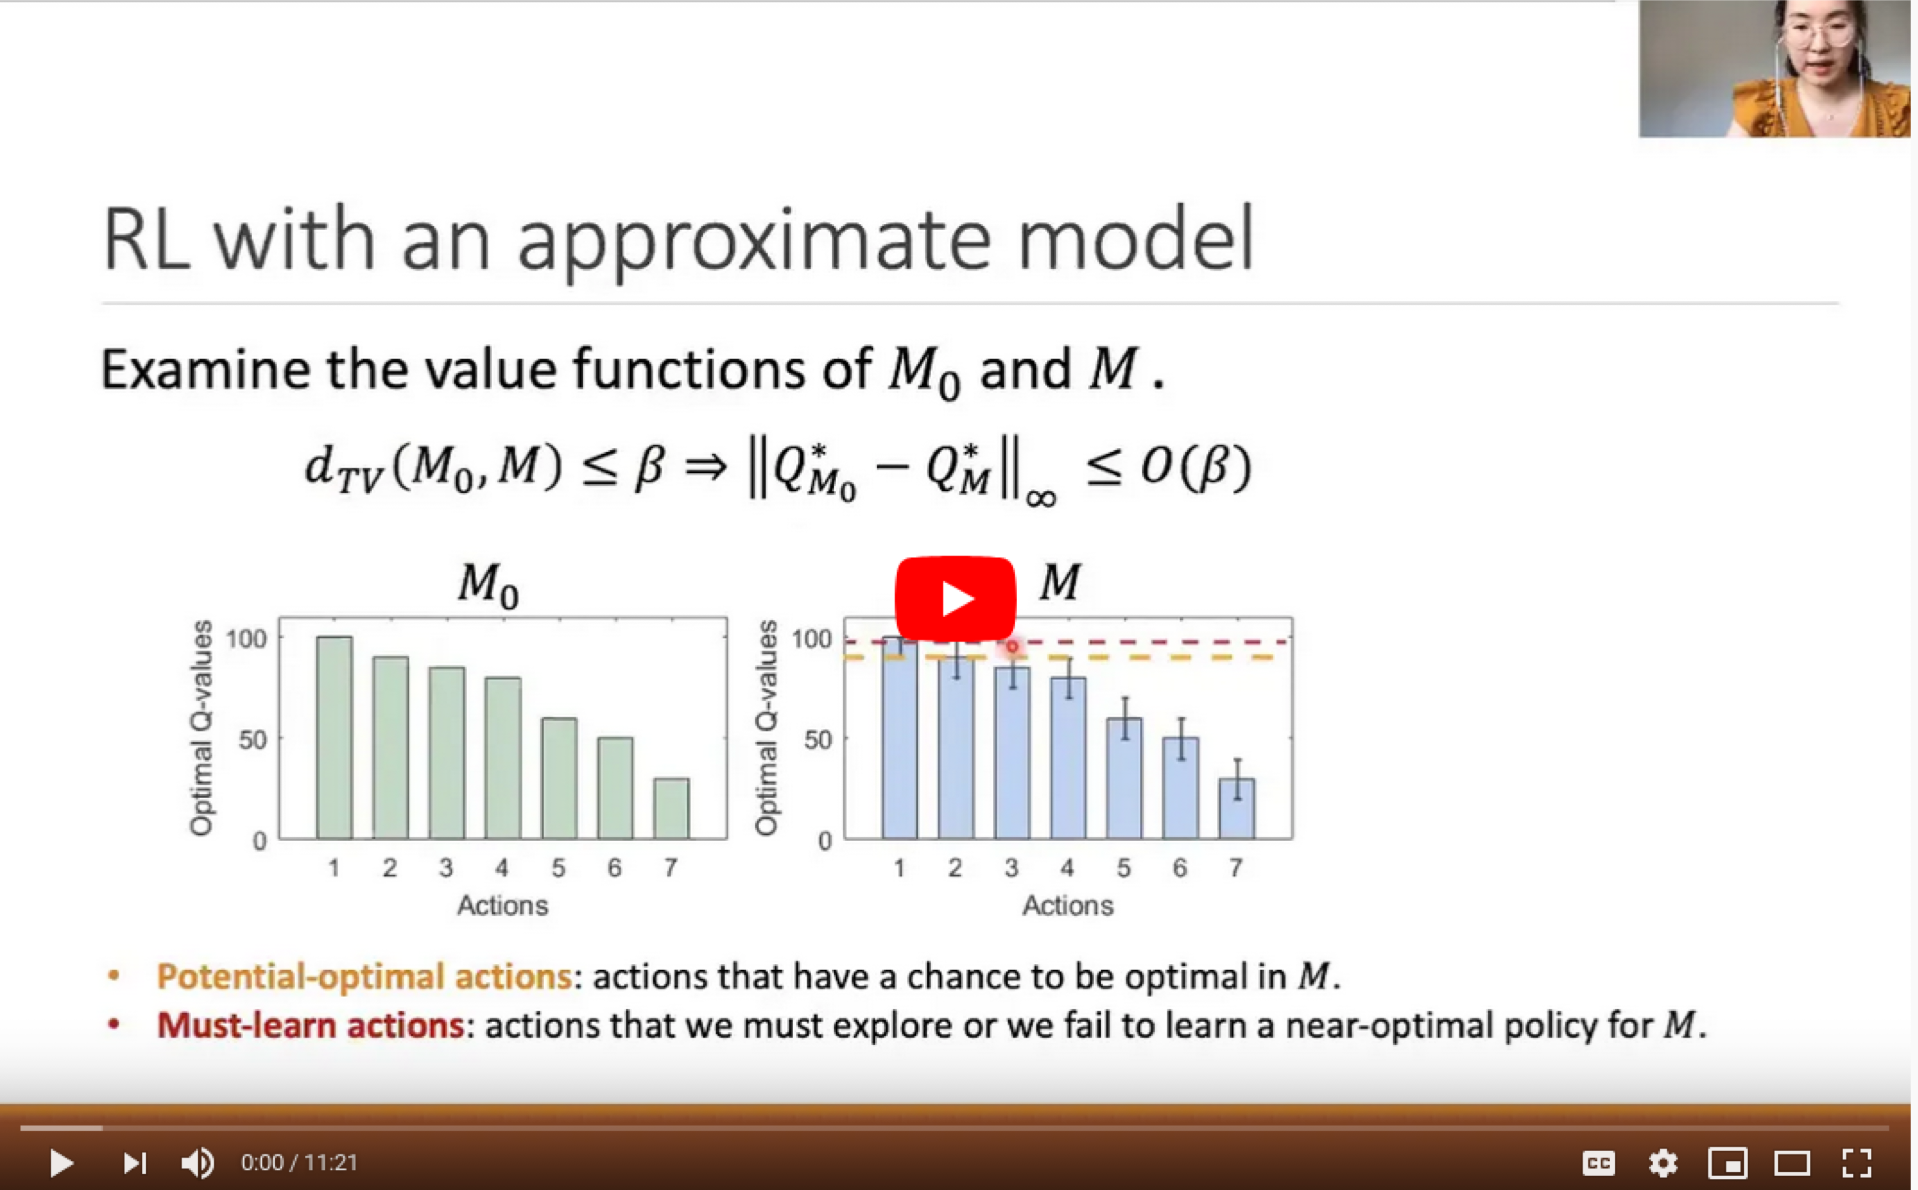 How does an approximate model help in RL?